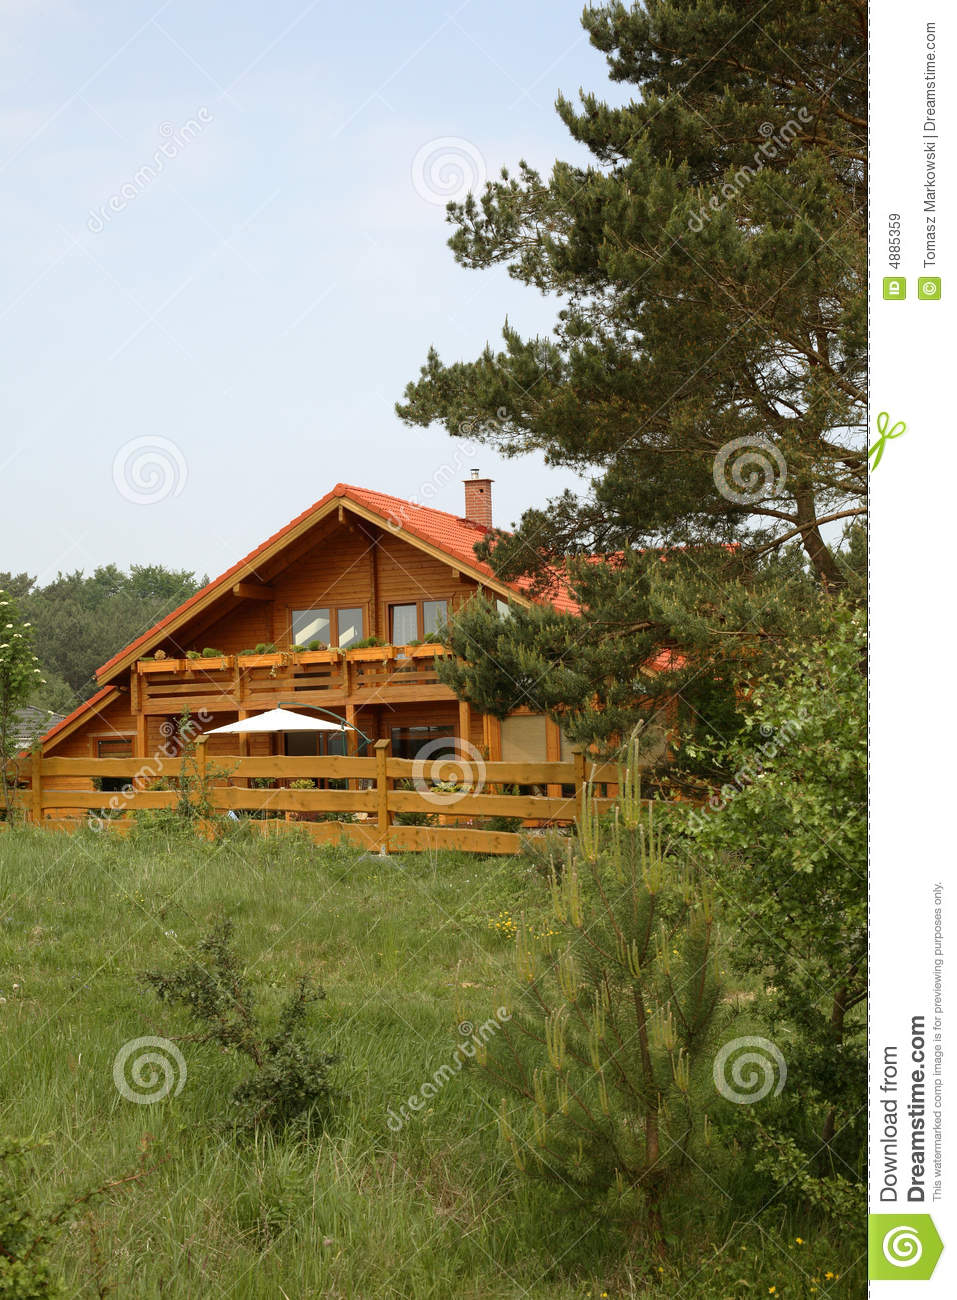 Country house royalty free stock images image 4885359 for Country house online